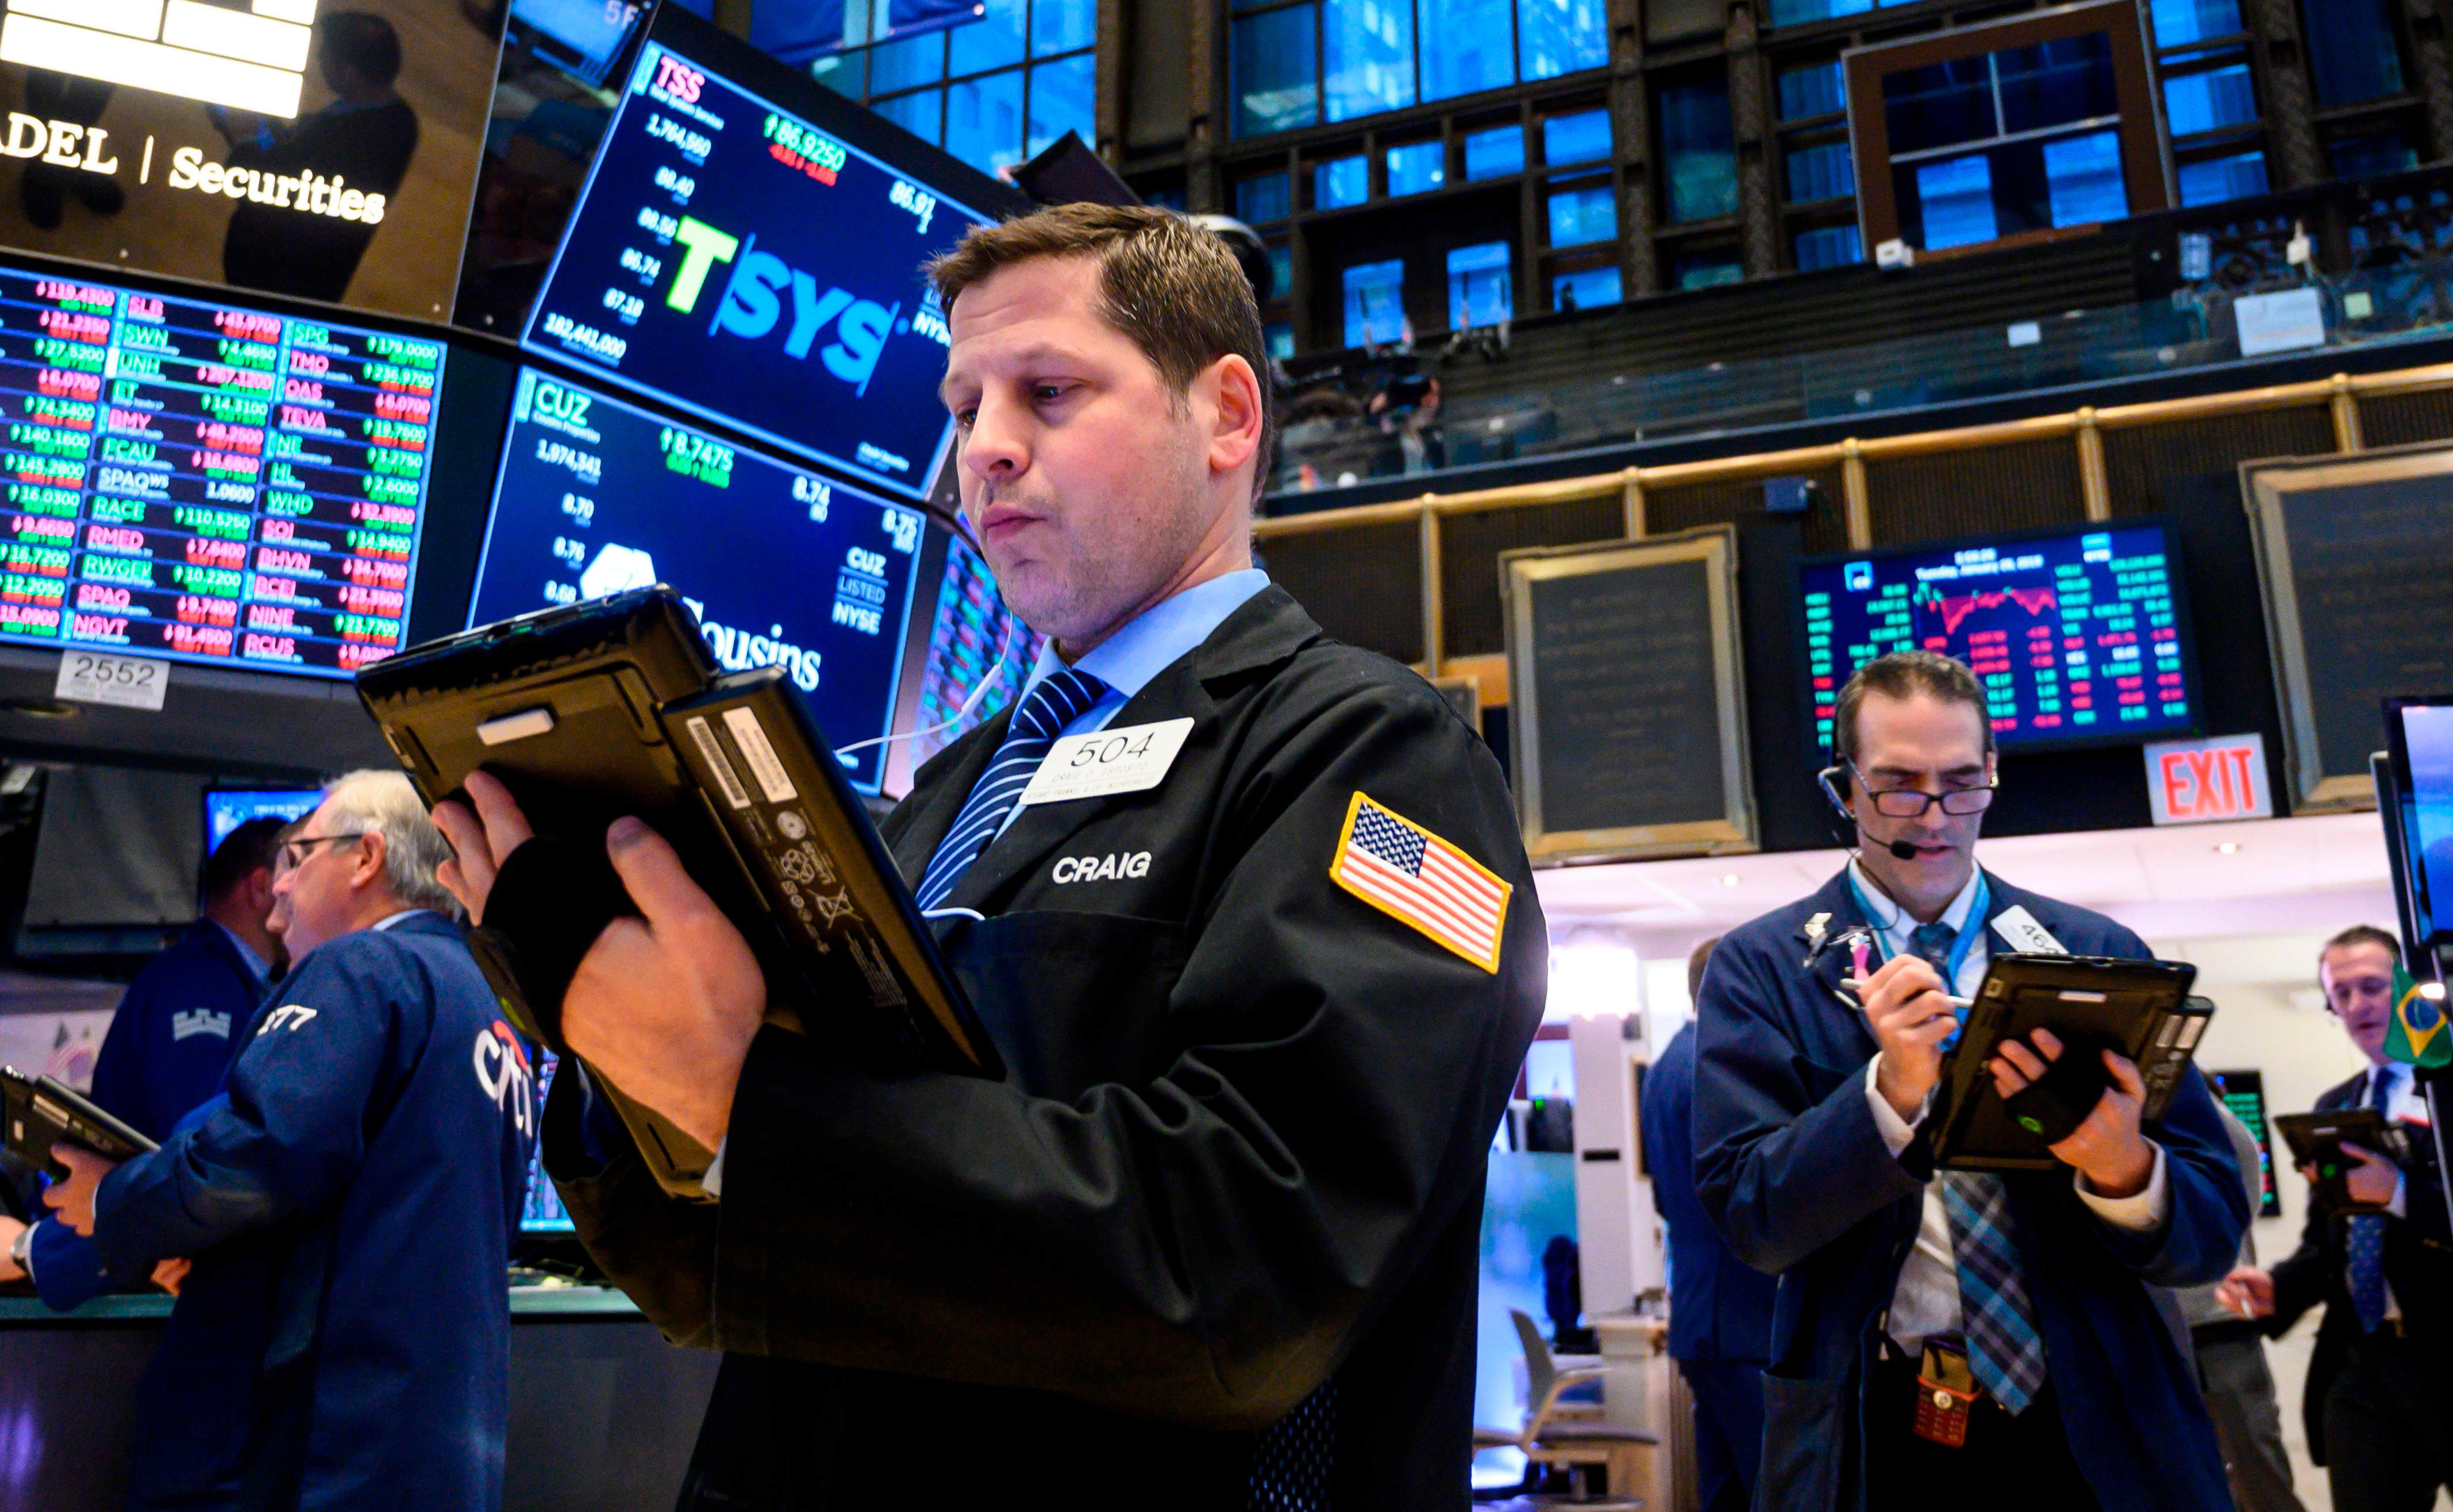 US Treasury yields move lower as investors await economic data, auctions